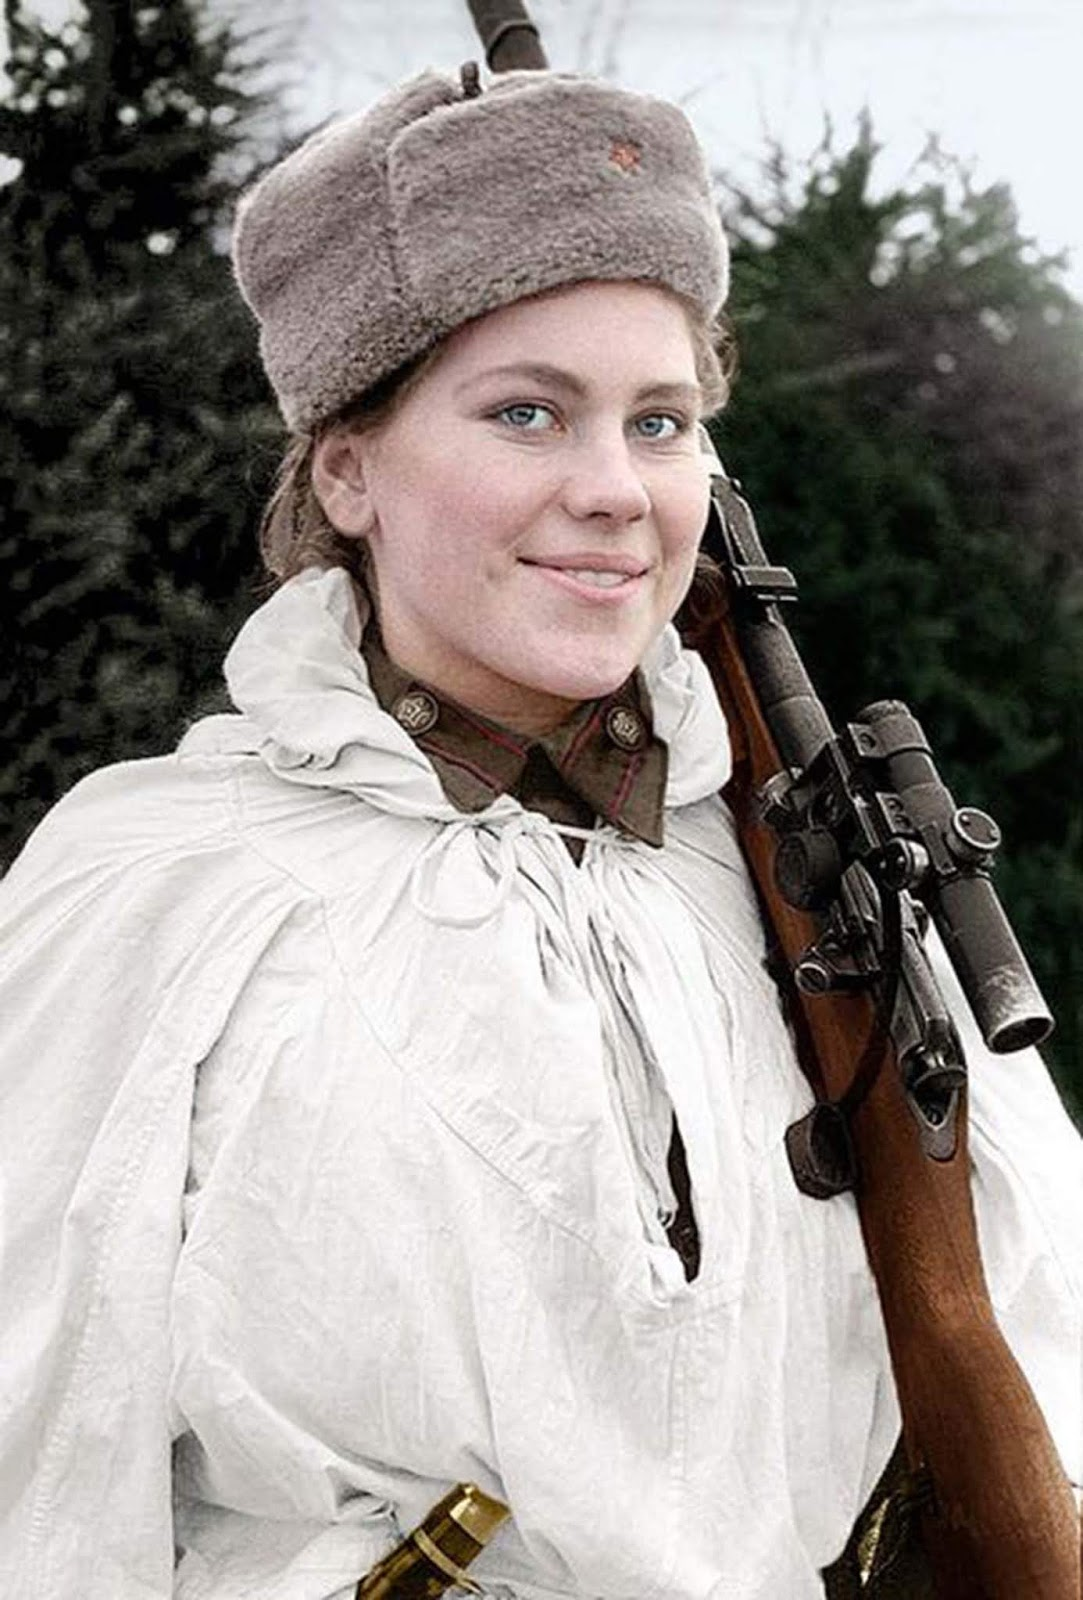 The famous sniper Roza Shanina. Nobody wore a camouflage smock better. More about here on: Smart, beautiful and deadly, 19-year-old Soviet sniper Roza Shanina had 59 confirmed kills.